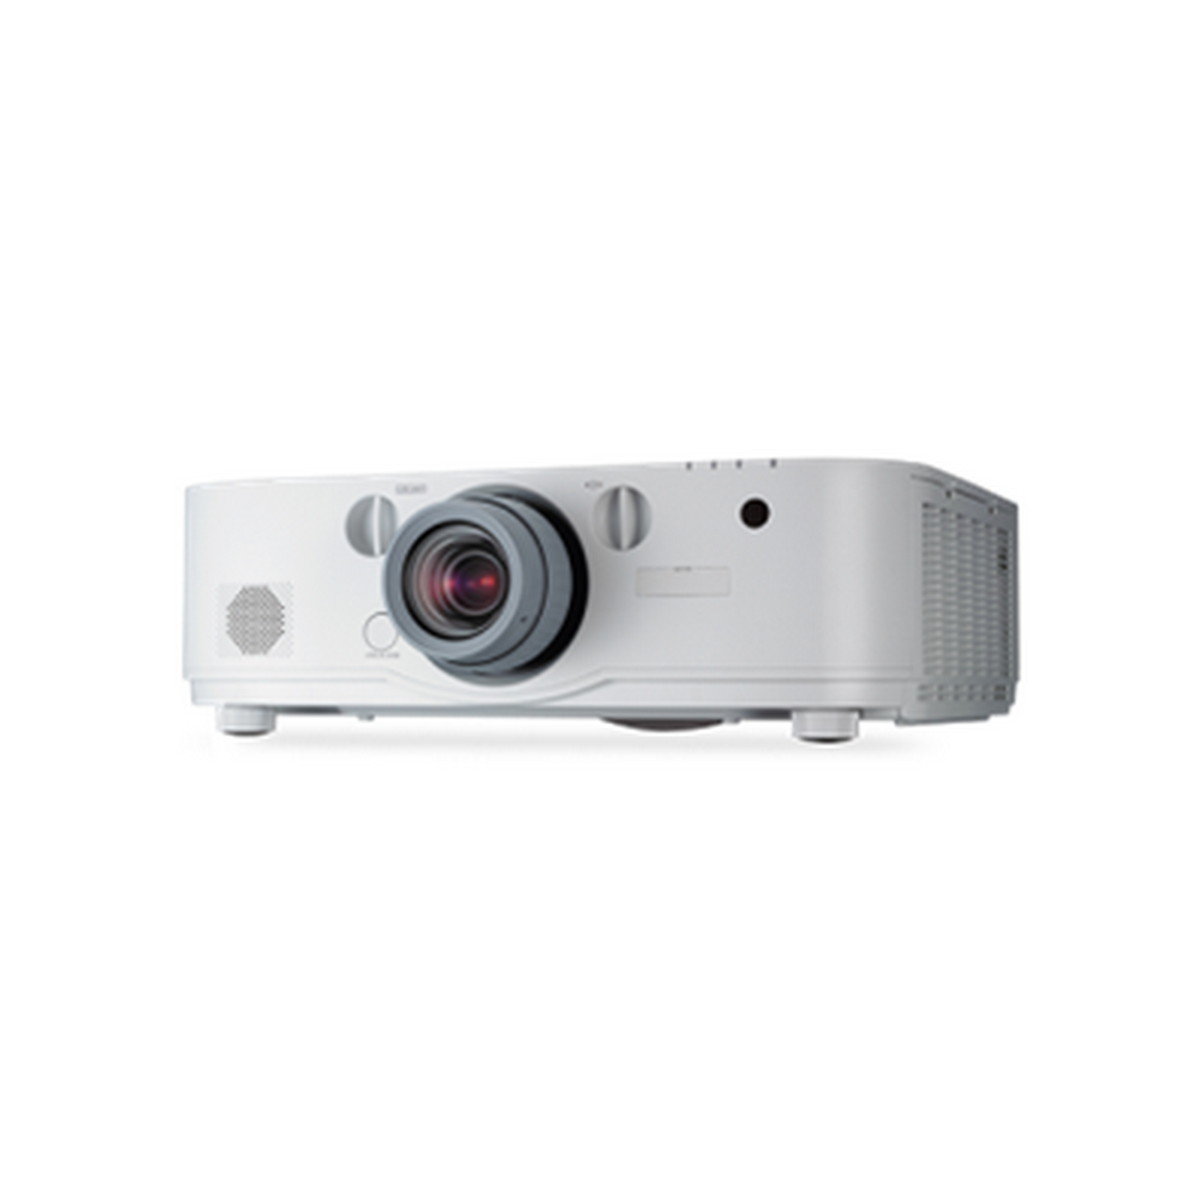 NEC 5700 lumen Widescreen Advanced Professional Installation Projector w/Lens